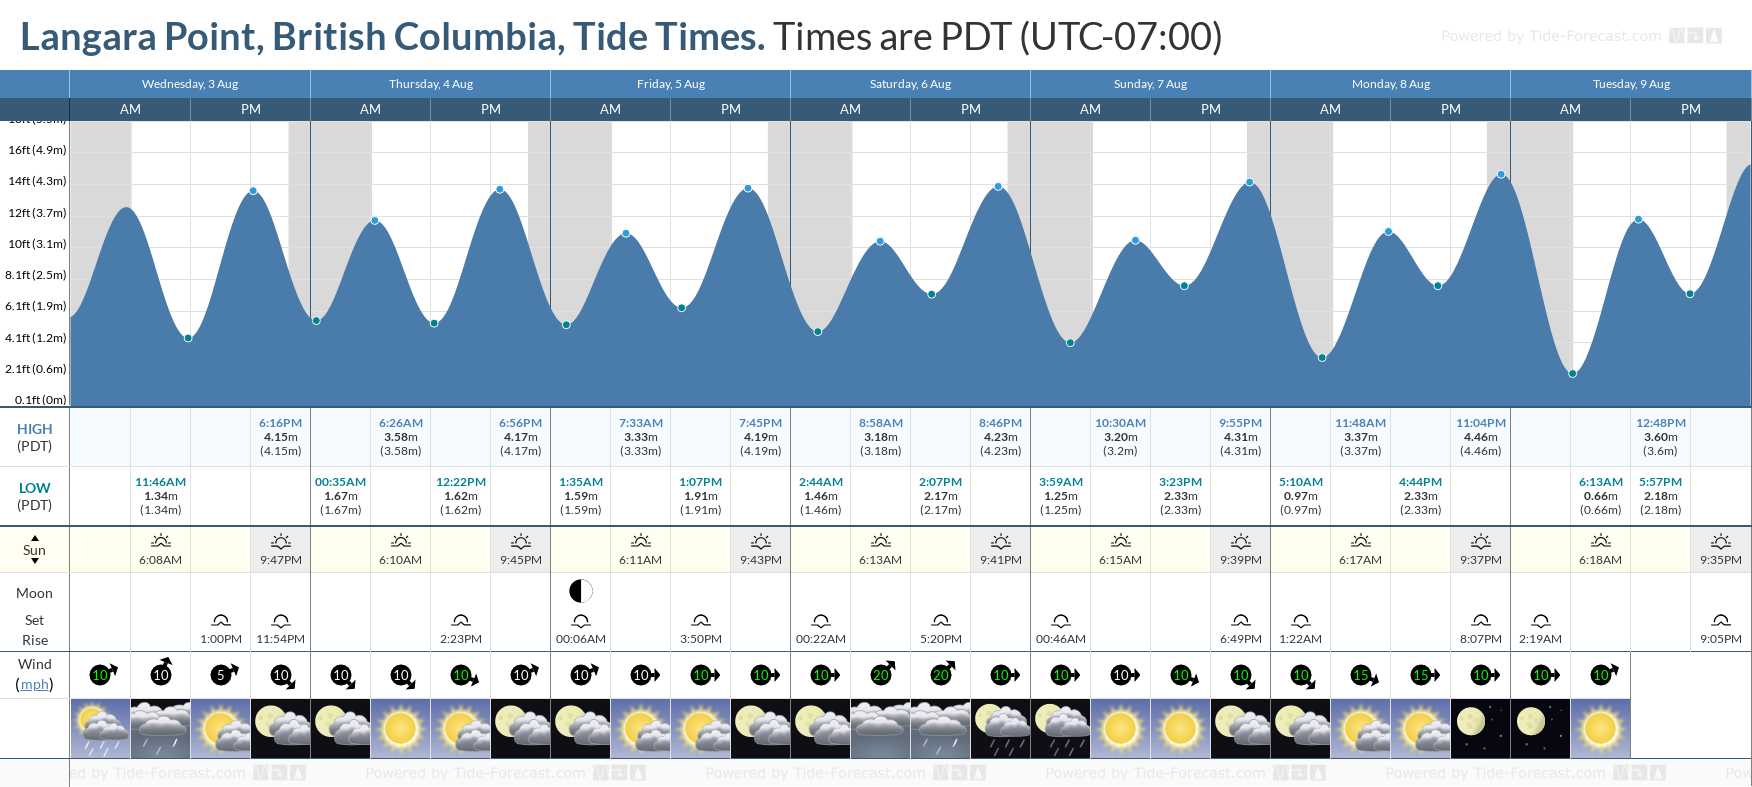 Langara Point, British Columbia Tide Chart including high and low tide tide times for the next 7 days